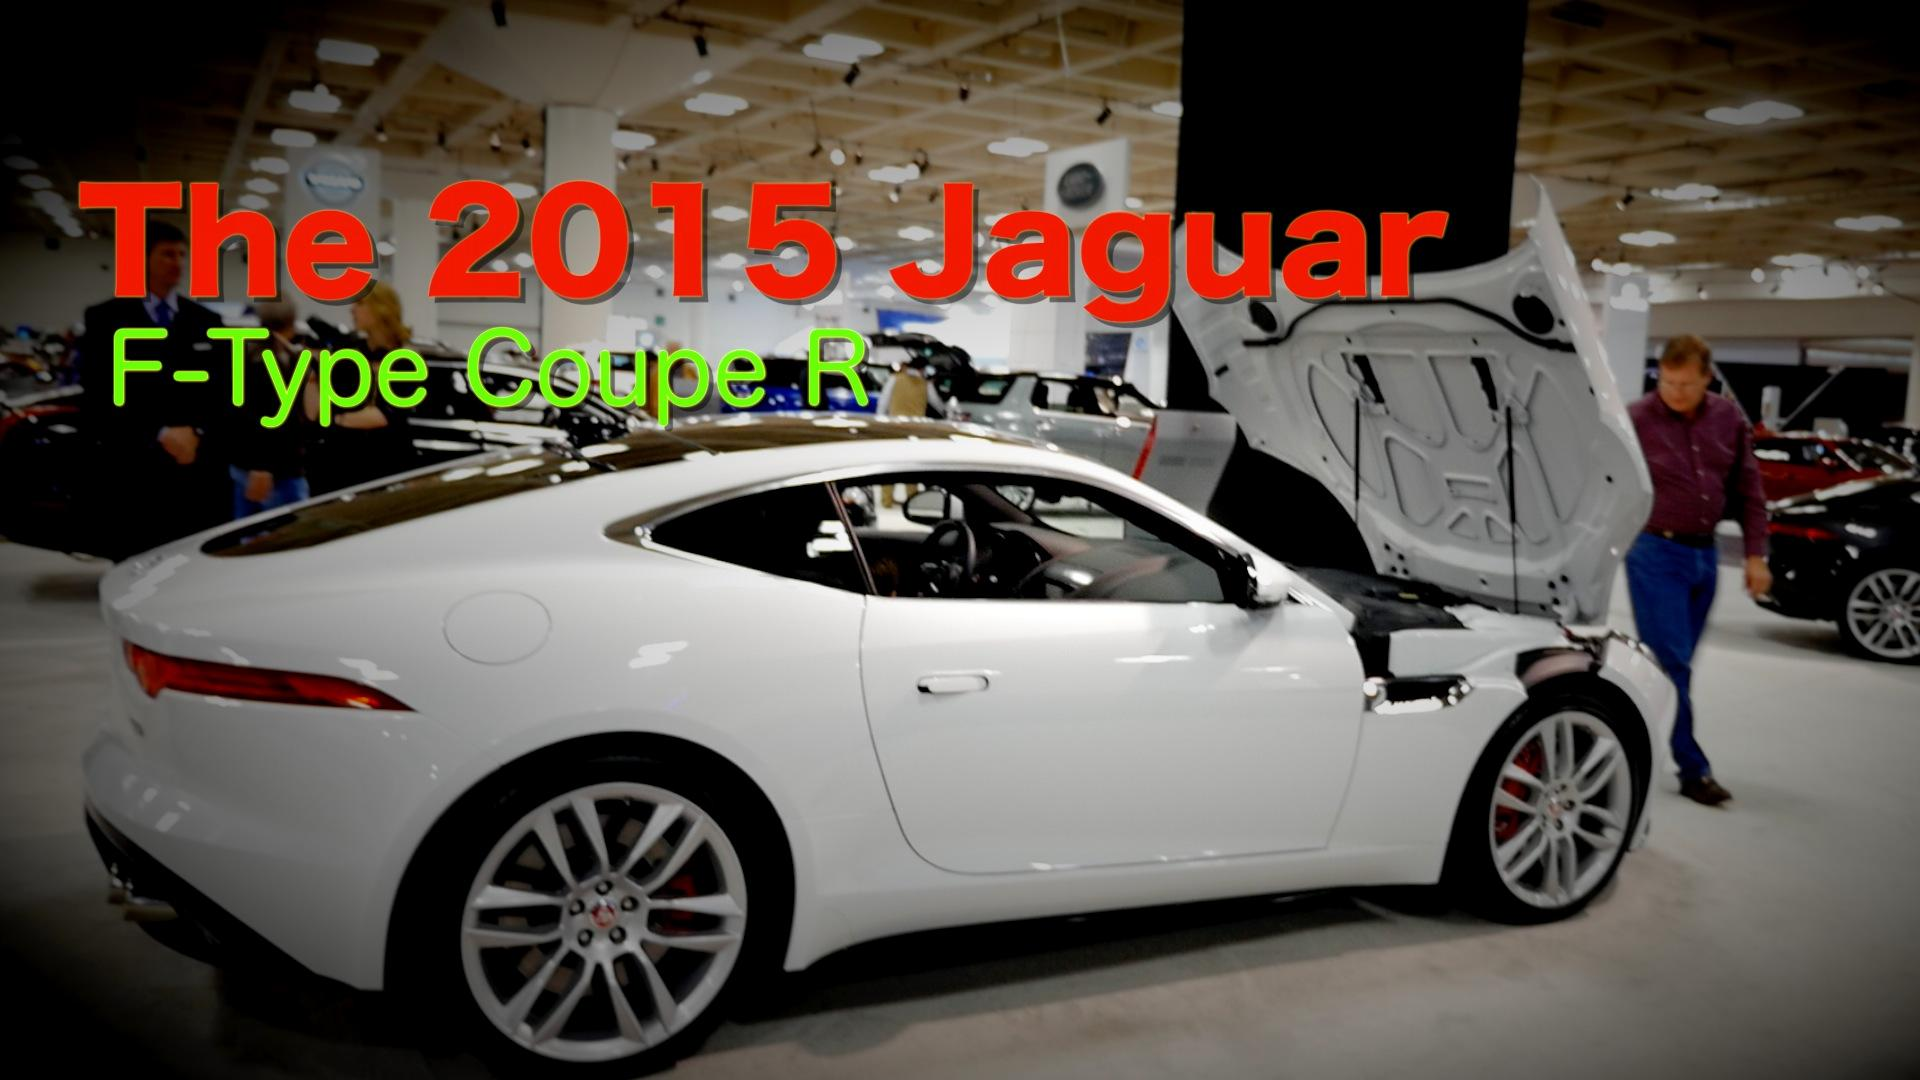 The 2015 Jaguar F-Type Coupe R: A Modern Take On A Classic